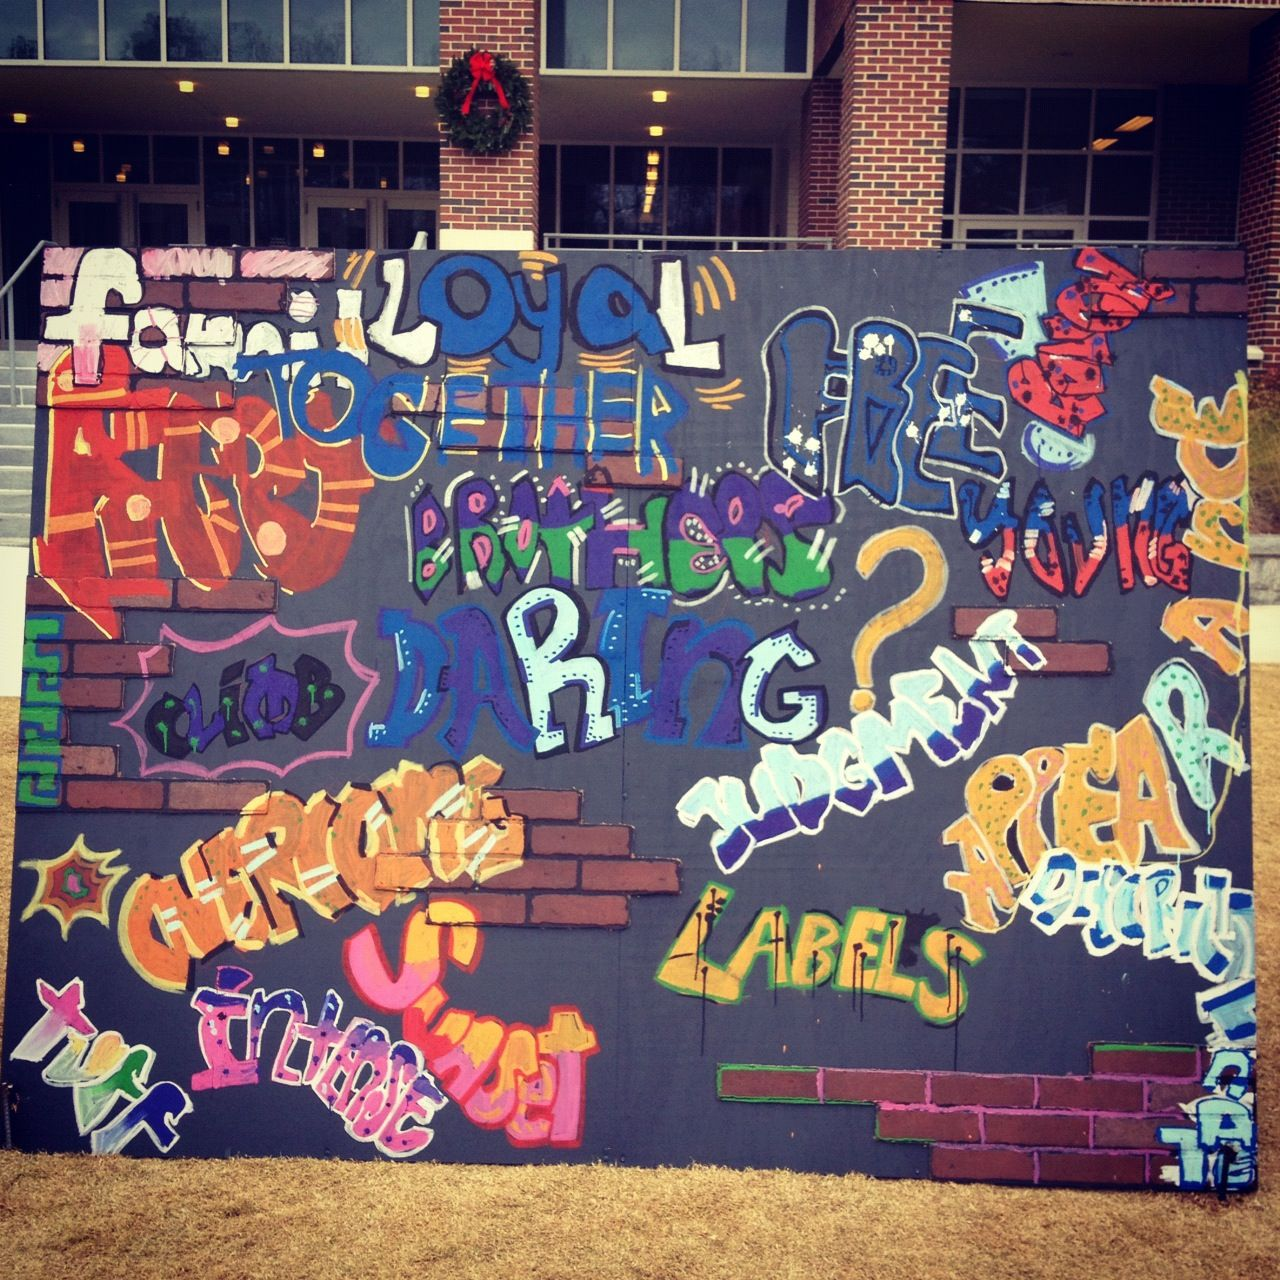 Middle school graffiti wall expresses literary themes from the outsiders